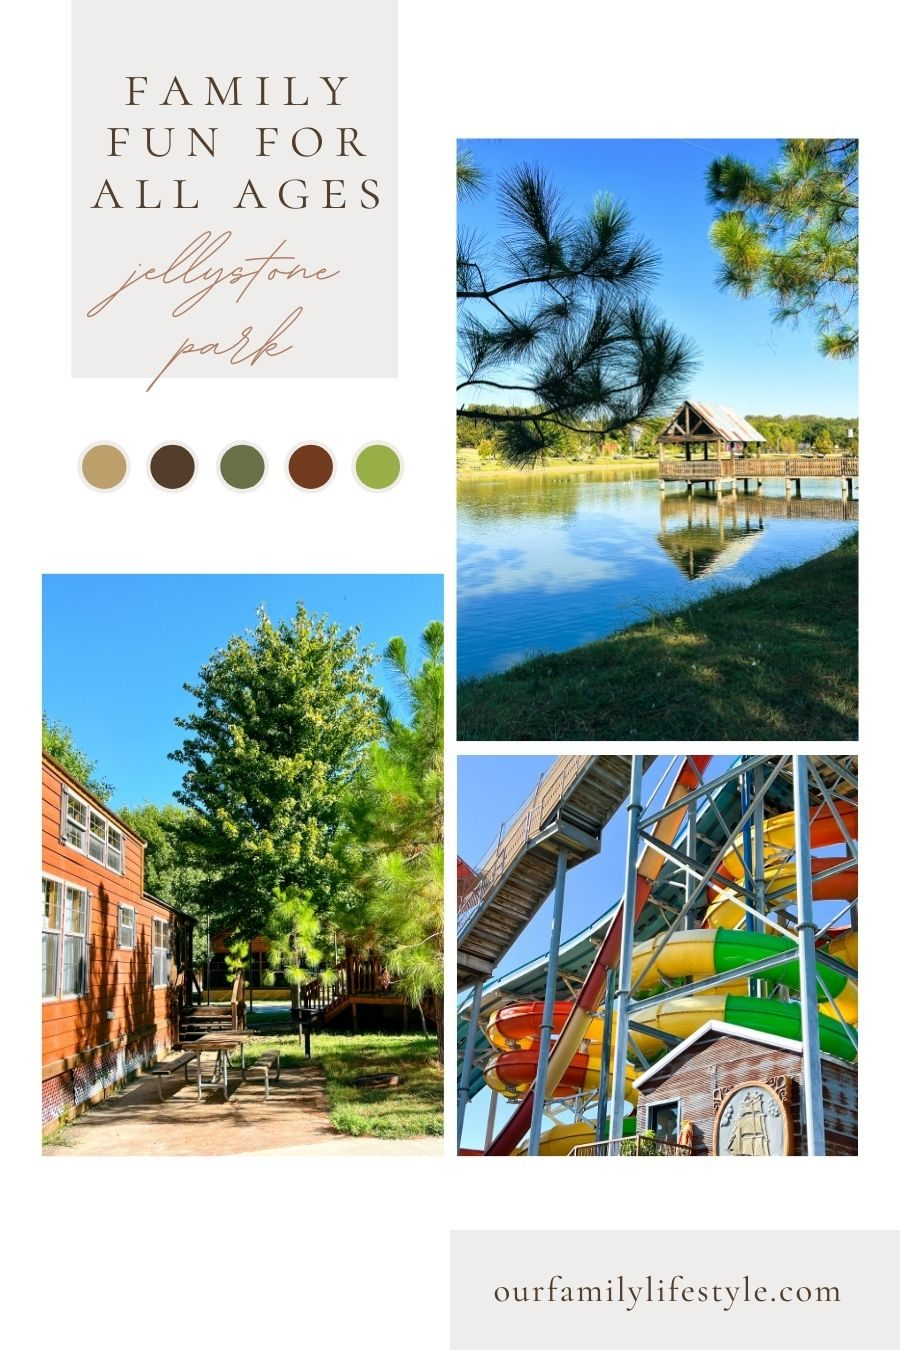 Family Fun for All Ages at North Texas Jellystone Park